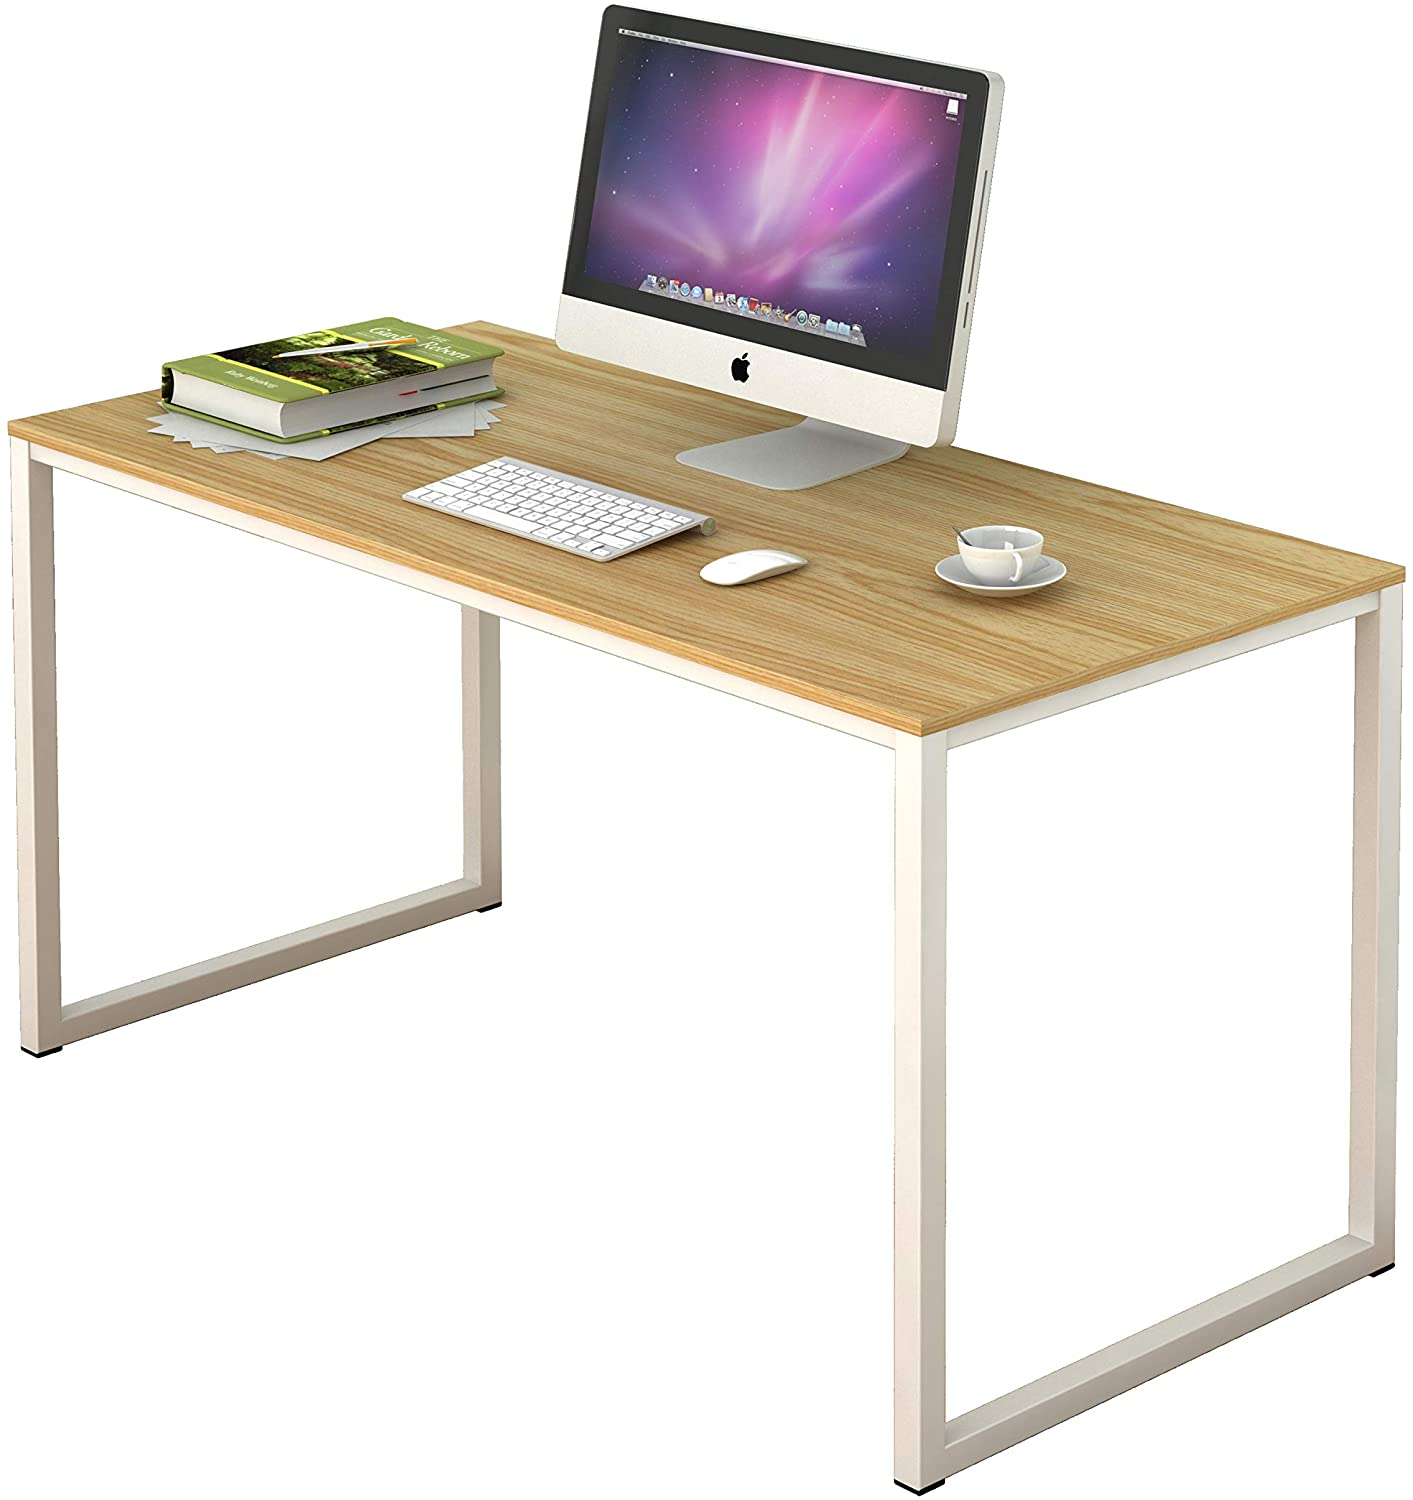 Hot Sale White And Oak Computer Desk Simple Design Writing Study Table For Home Office Buy Modern Expandable Computer Desk Staples Office Furniture Desks Steel Computer Desk Table Product On Alibaba Com